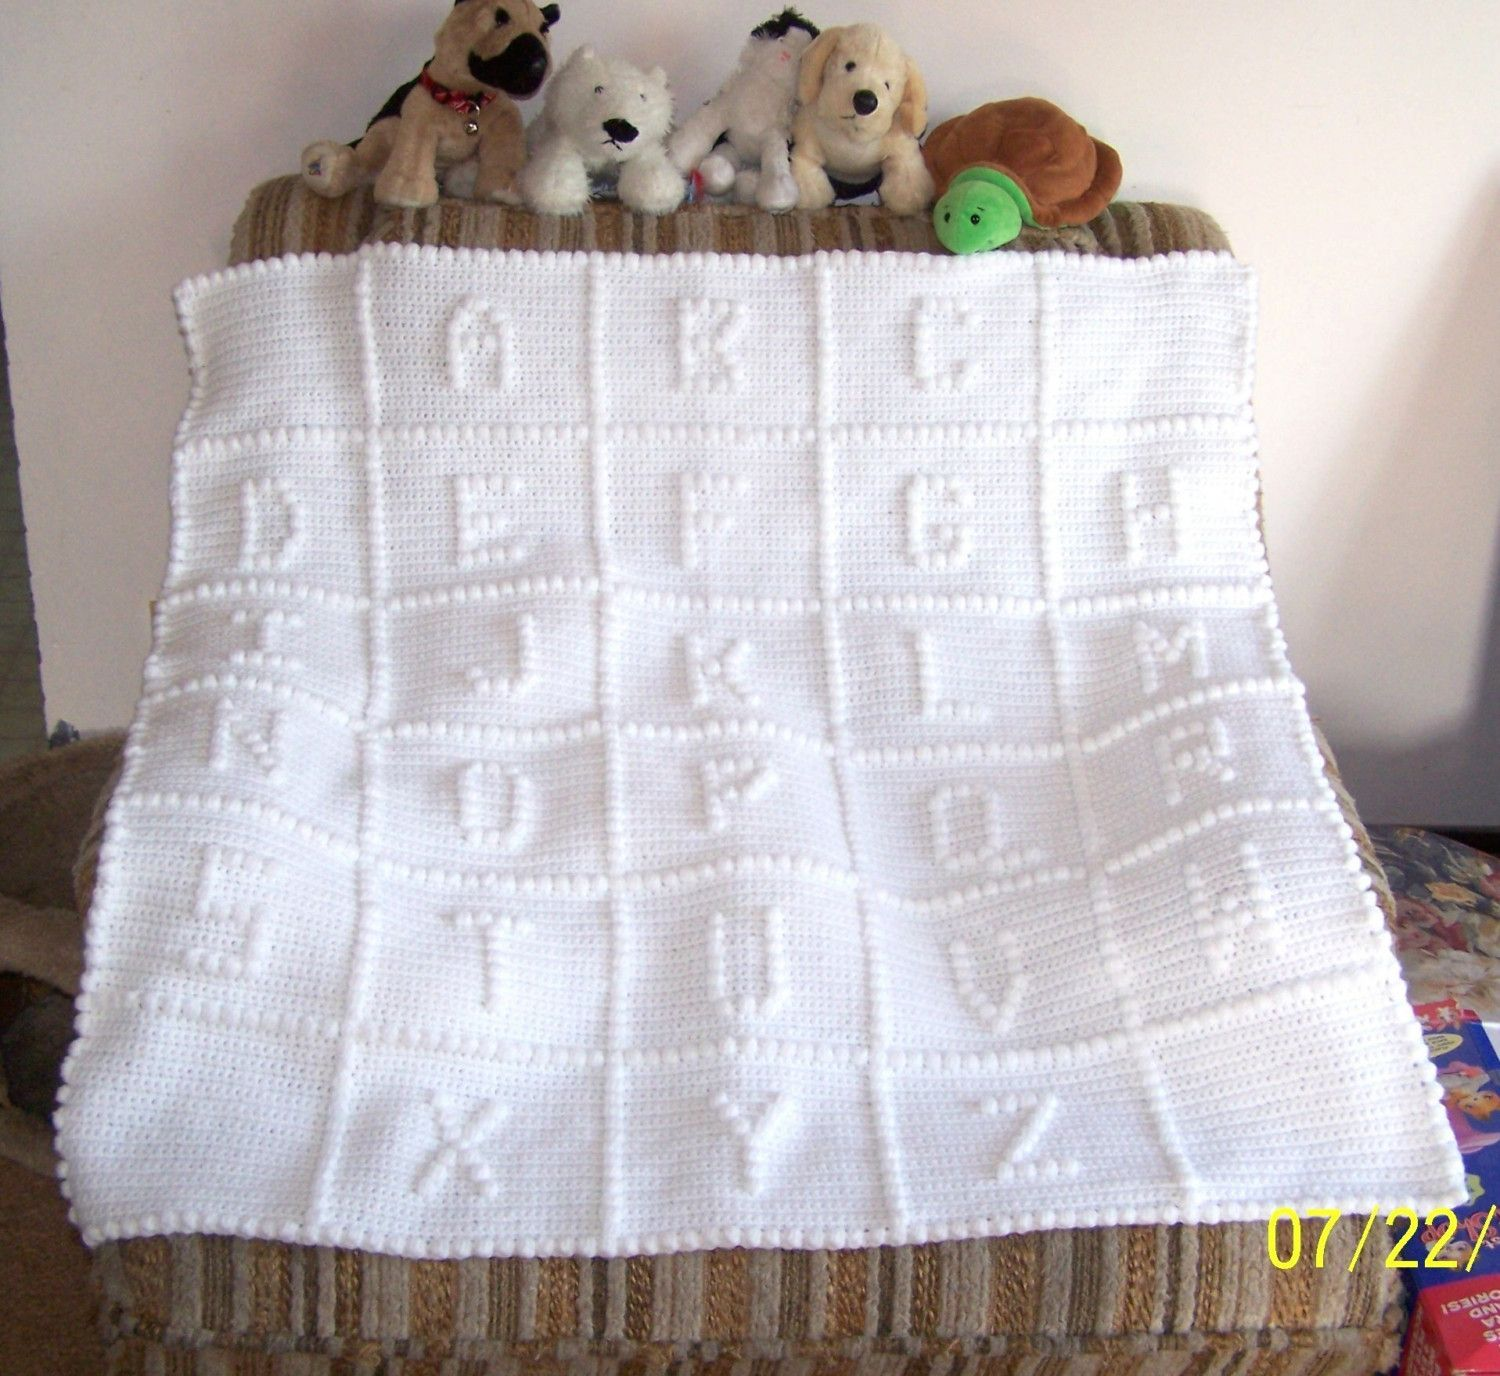 17 adorable crochet baby afghan patterns 9 never before seen 17 adorable crochet baby afghan patterns 9 never before seen bankloansurffo Gallery